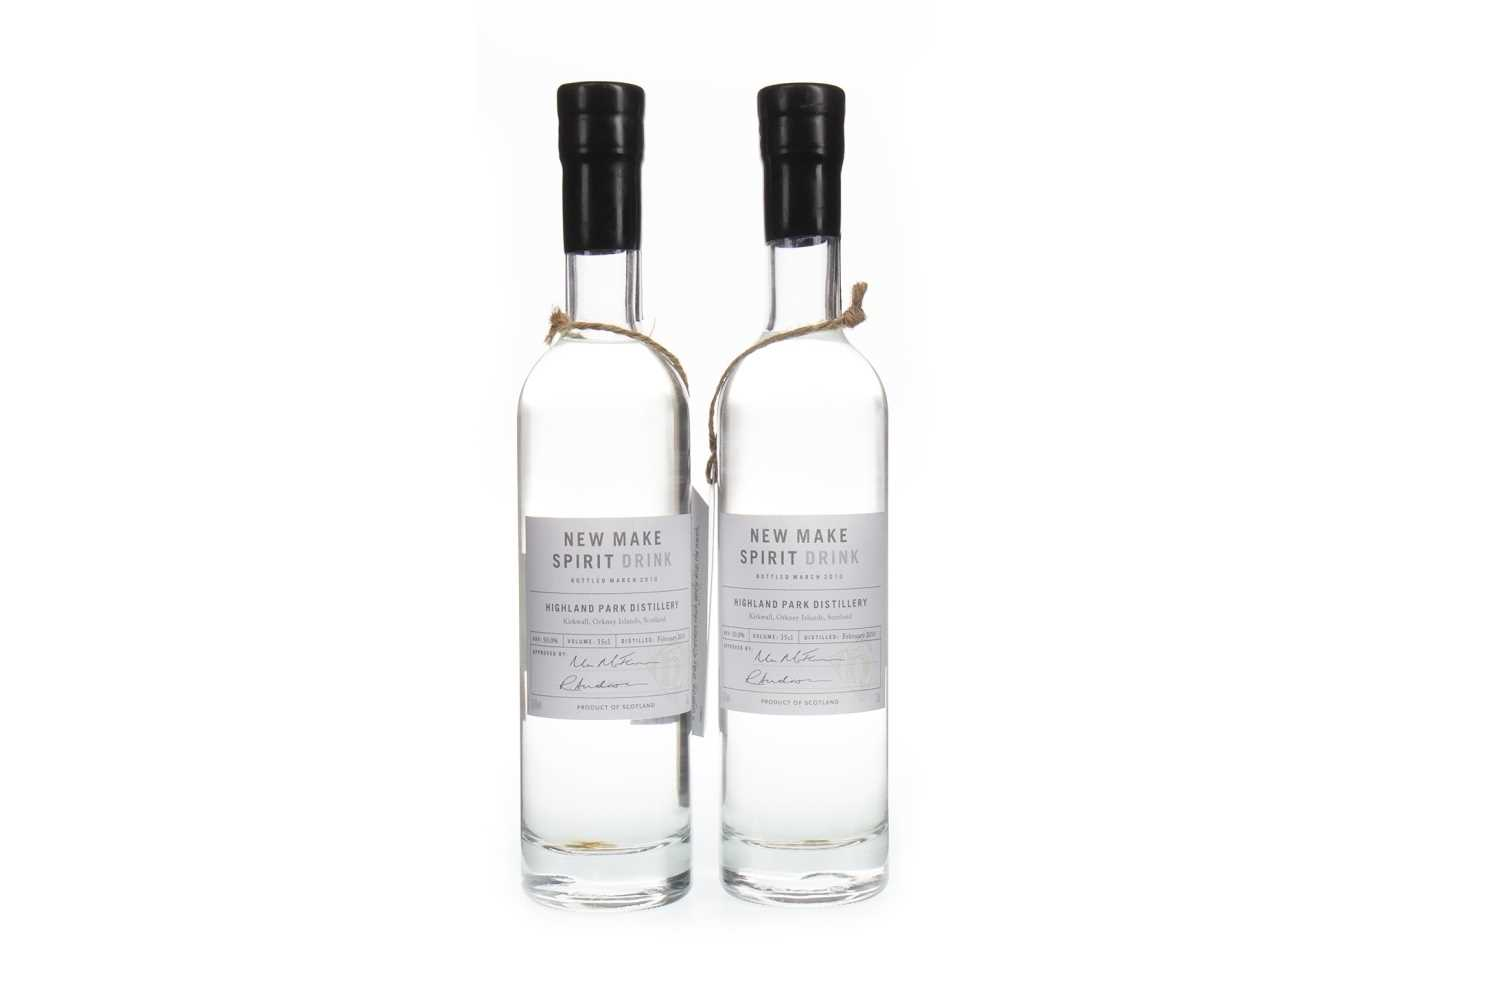 Lot 310-TWO HALF BOTTLES OF HIGHLAND PARK 2010 NEW MAKE SPIRIT